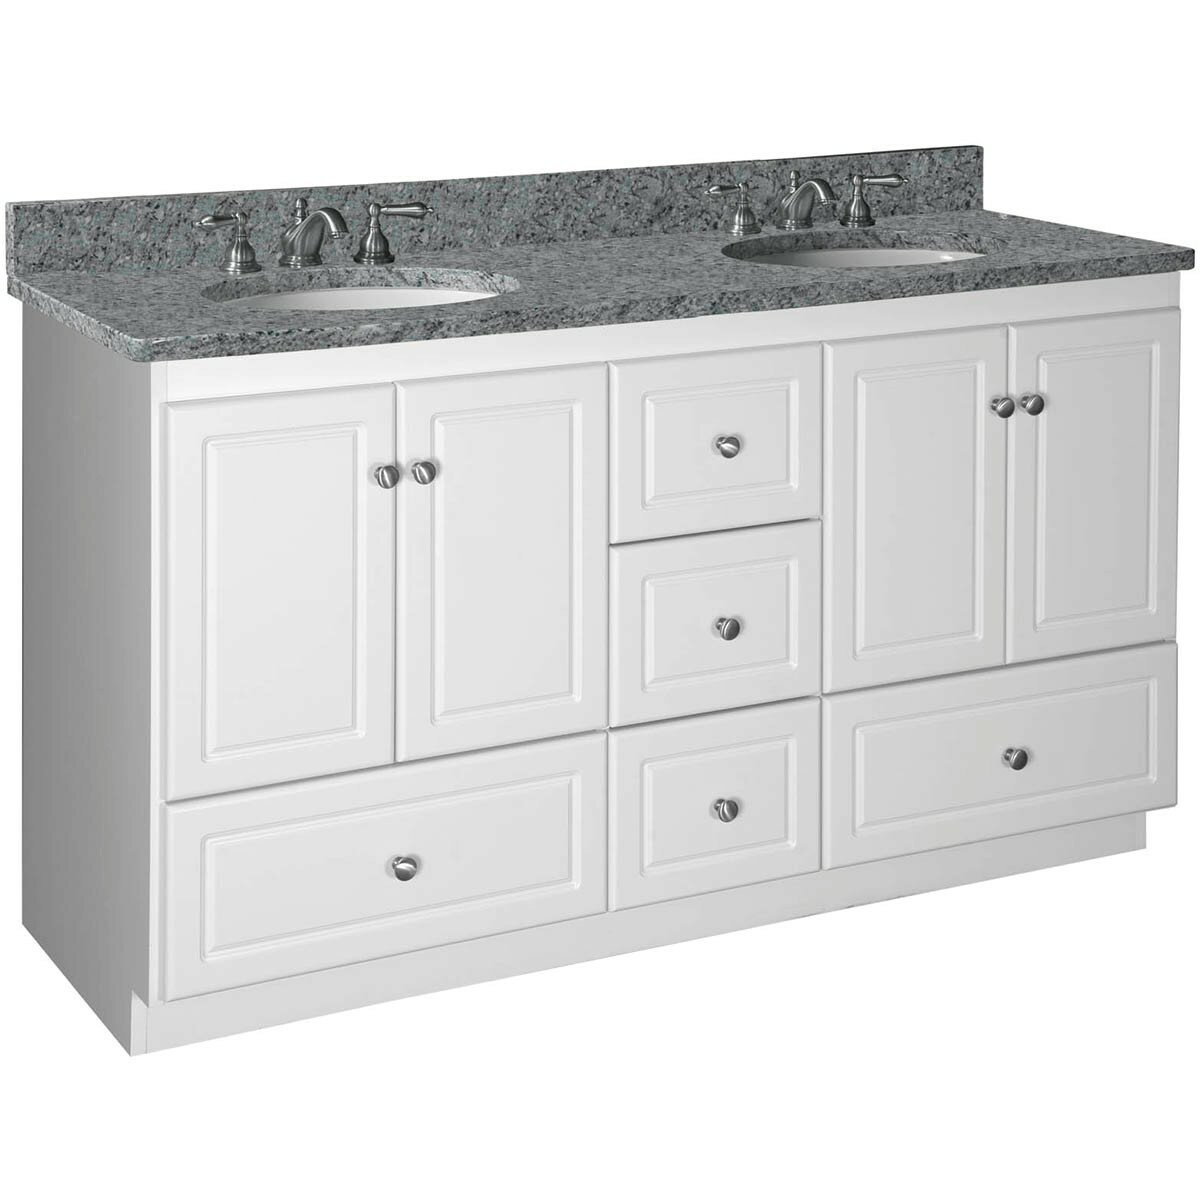 Strasser Woodenworks Simplicity 60 Quot Double Bowl Bathroom